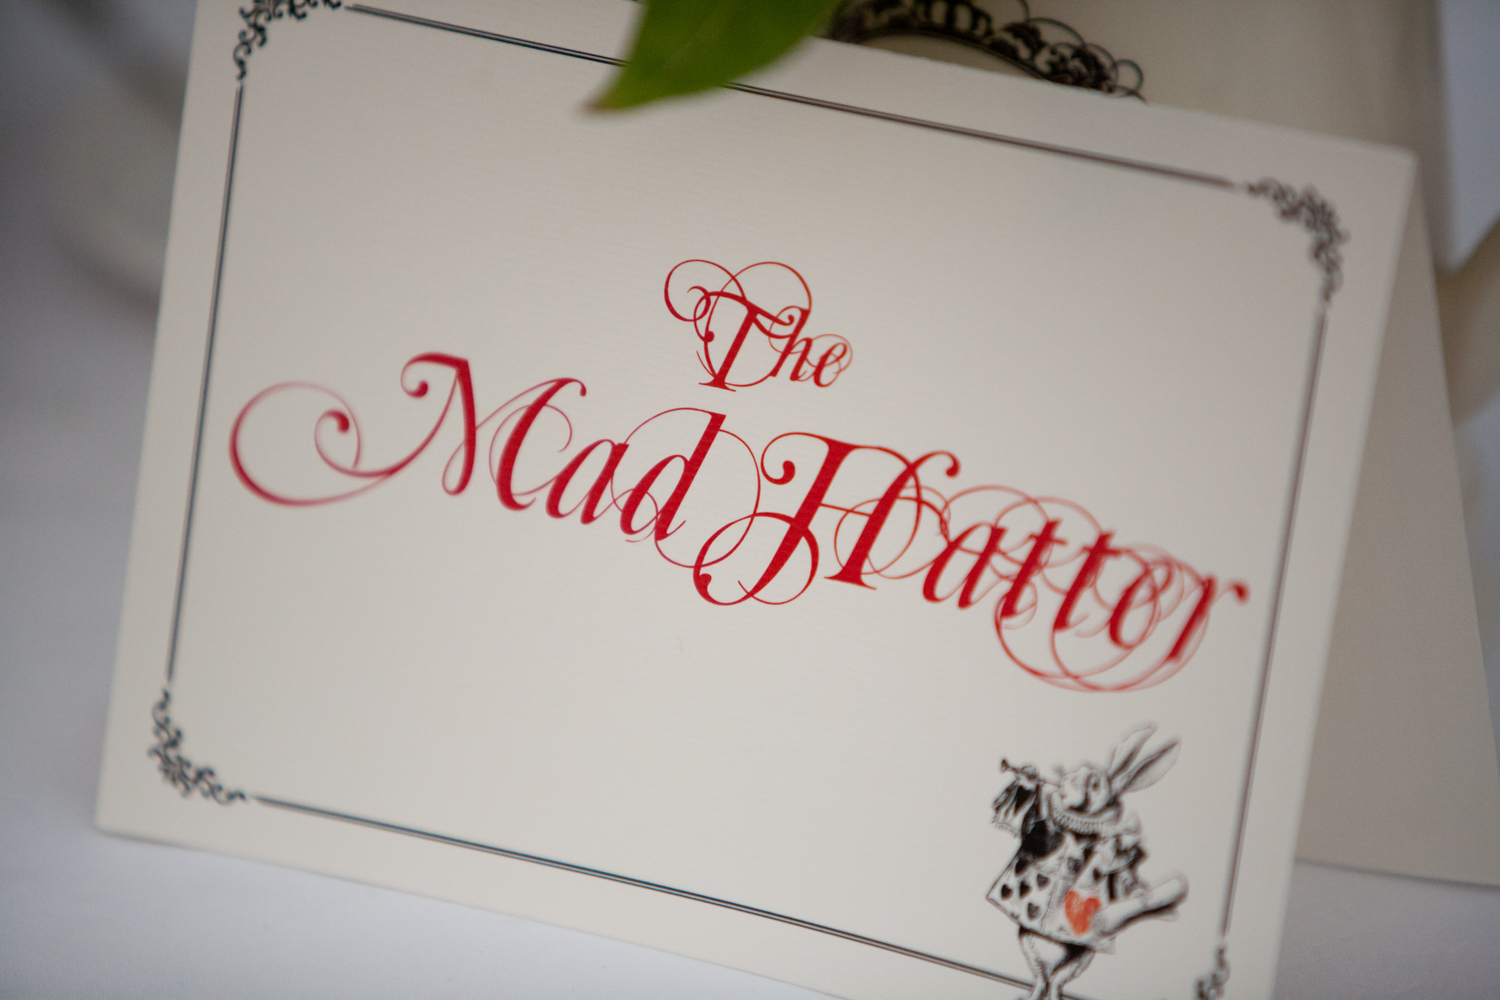 PICTORIAL_BERWICK_WEDDING_ALICE_WONDERLAND_MAD_HATTERS_FARM-9331.jpg